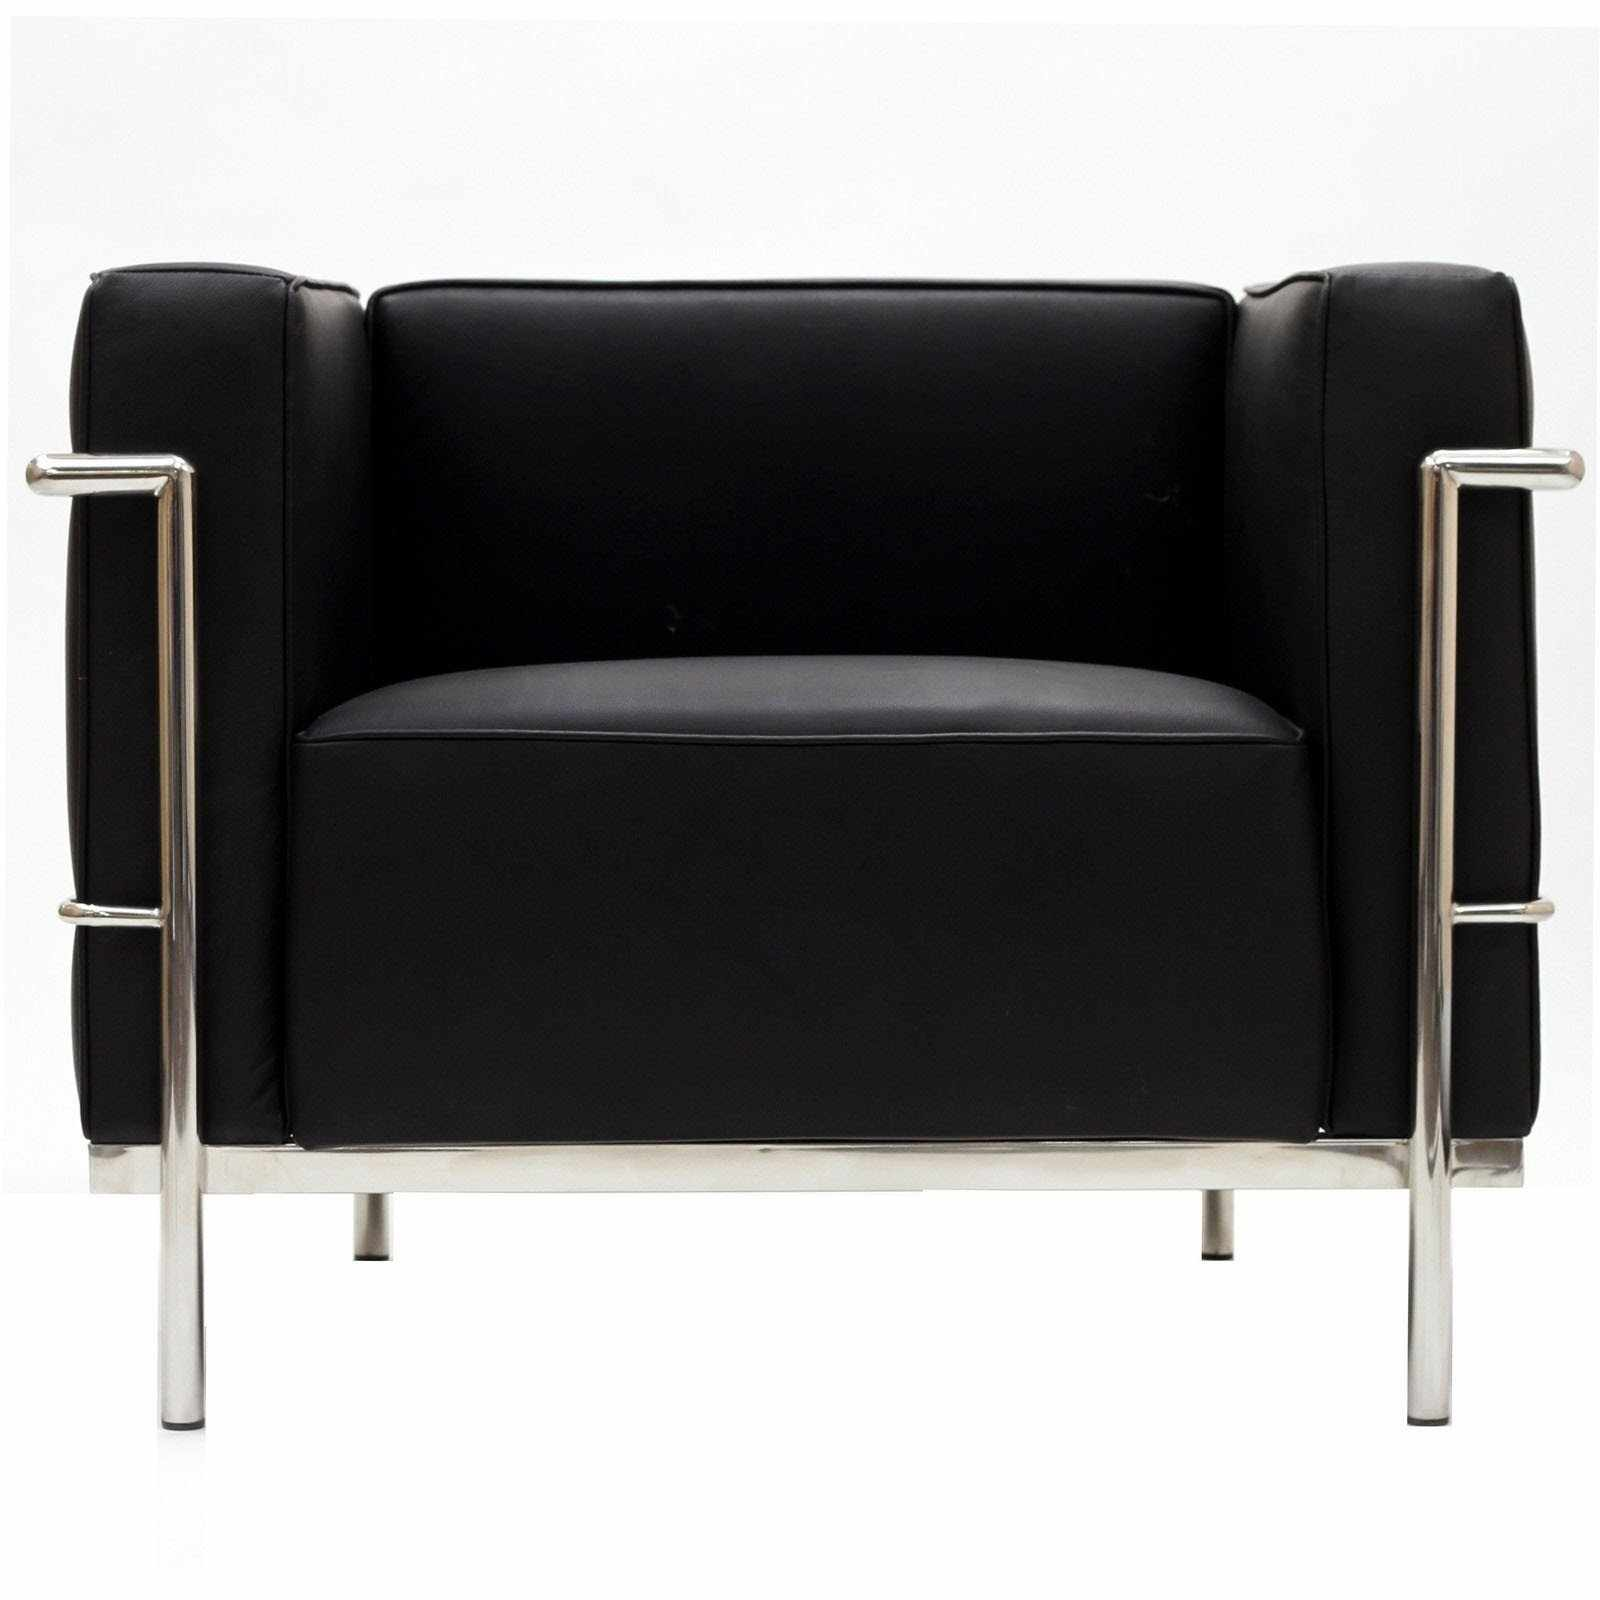 le corbusier sofa replica leather repair austin tx lc3 armchair emfurn style